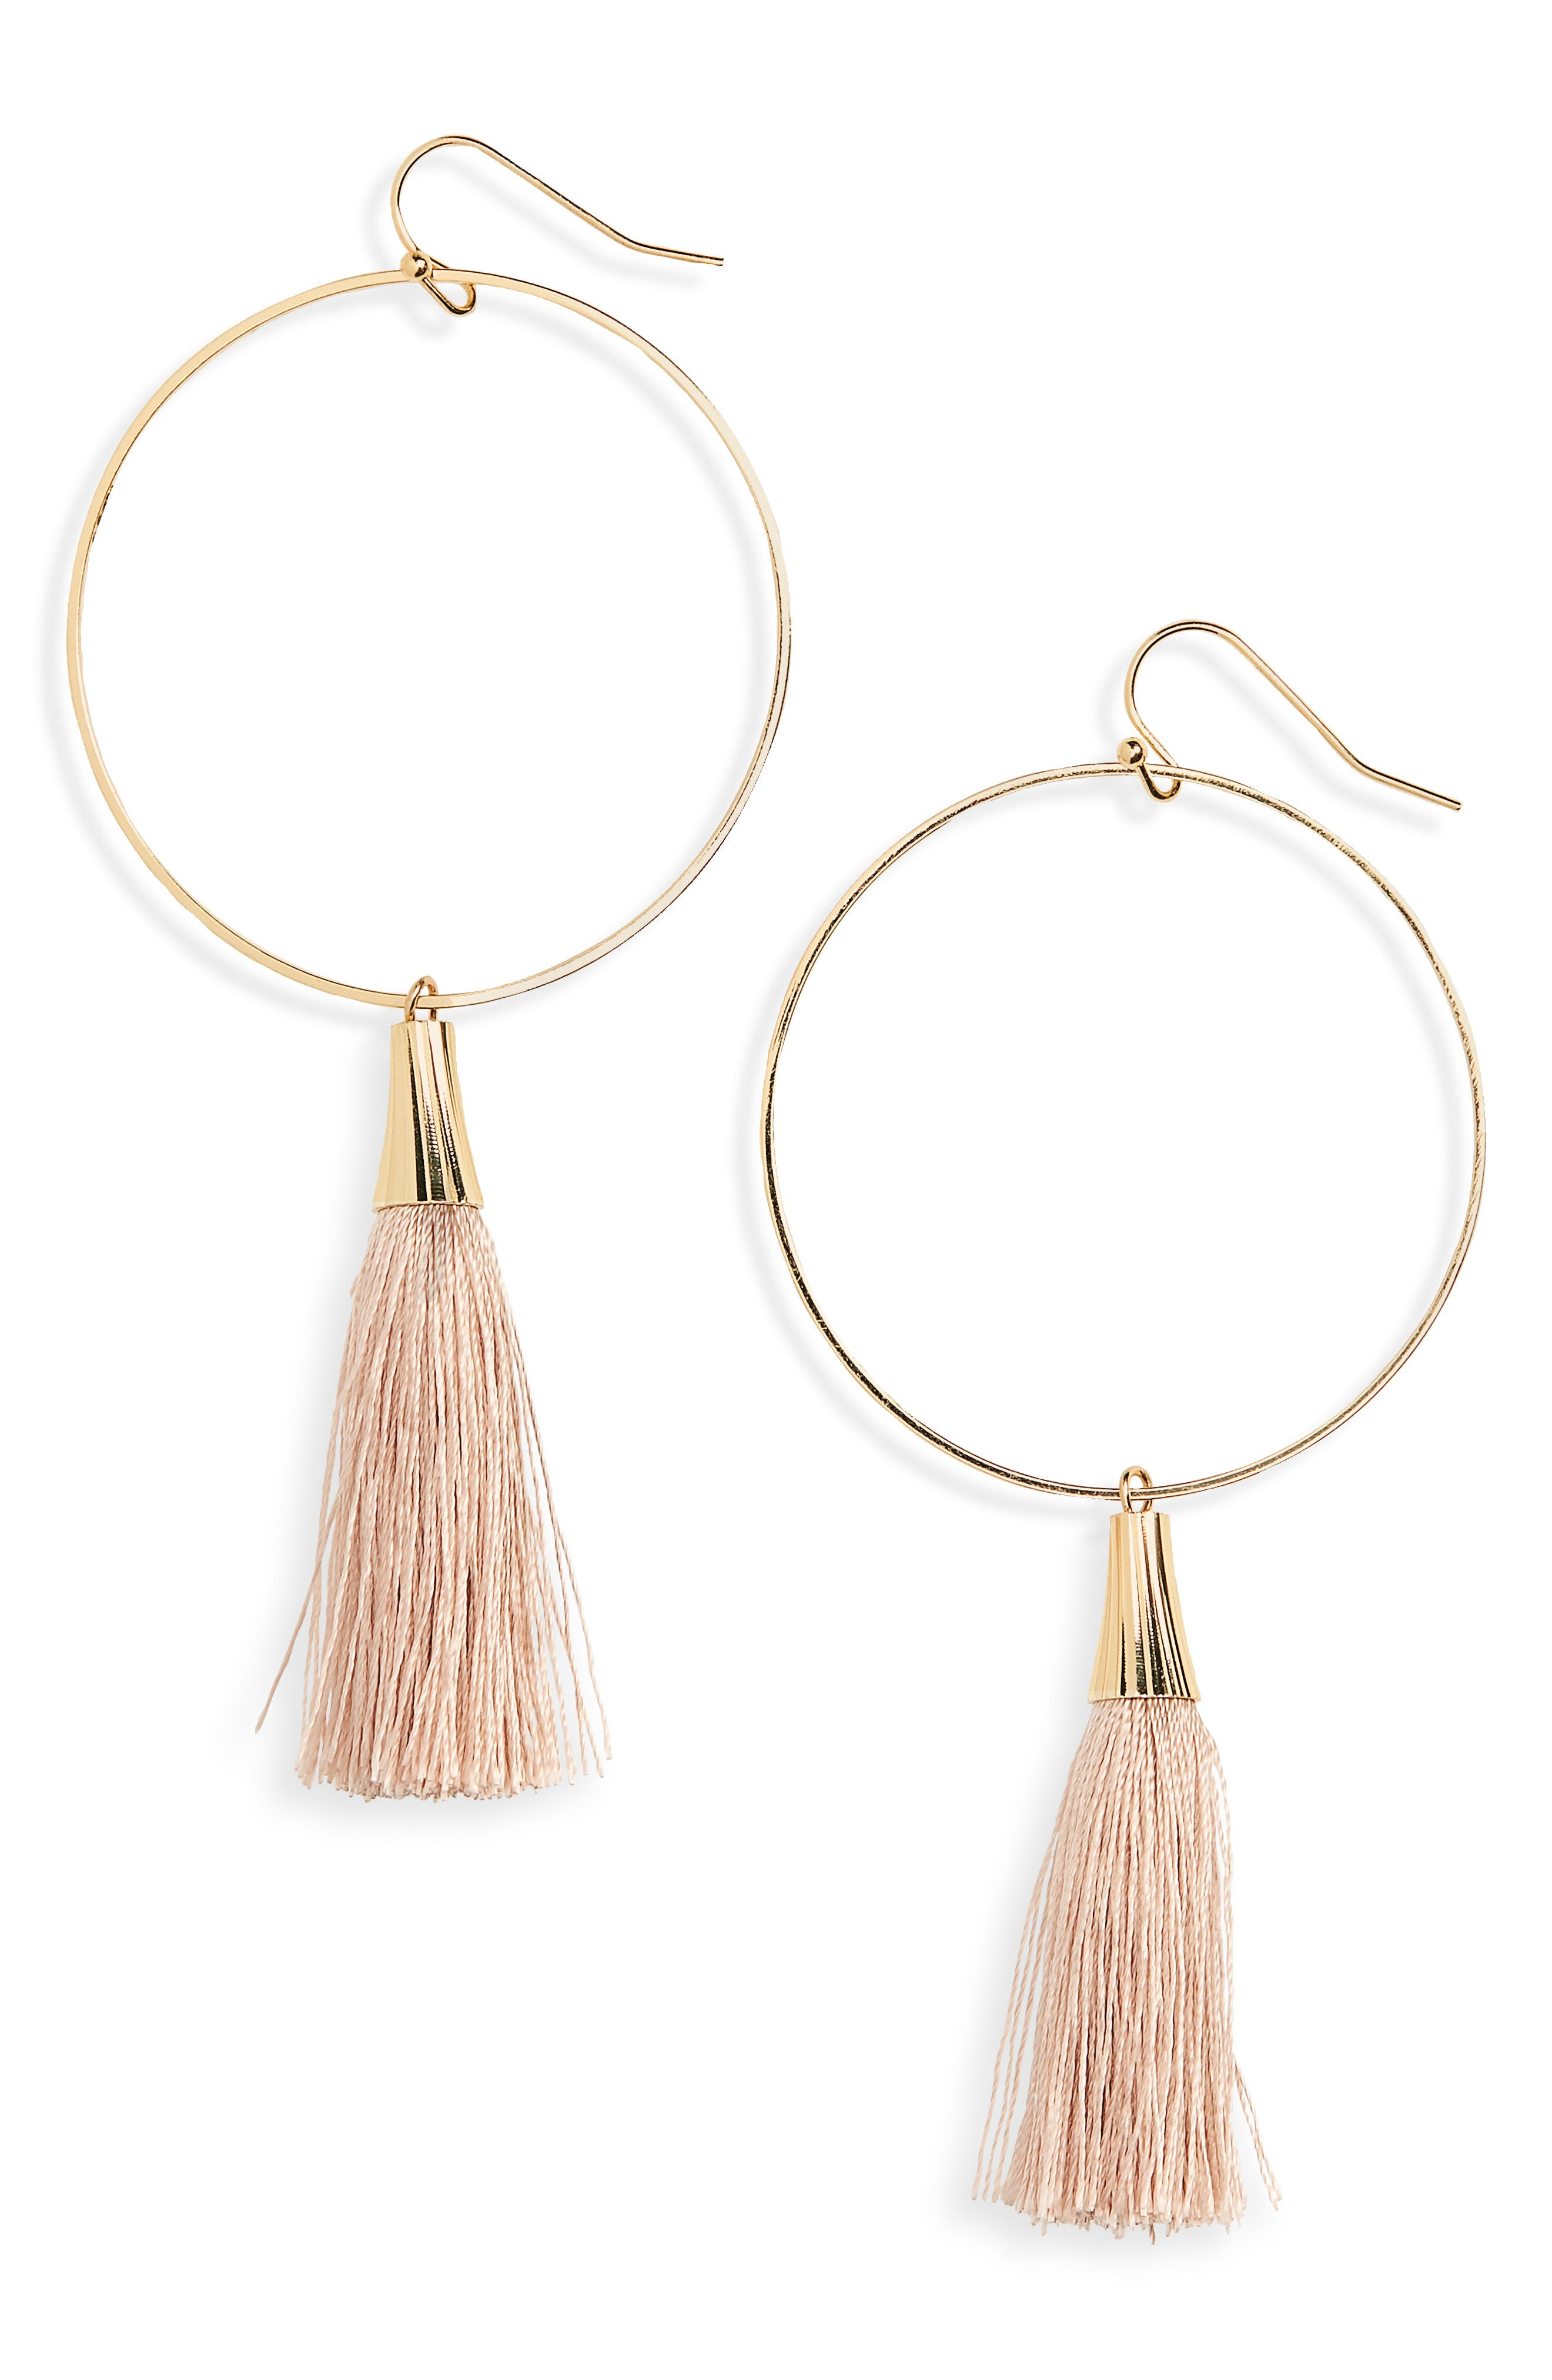 Tassel Hoop Earrings,                         Main,                         color, Beige